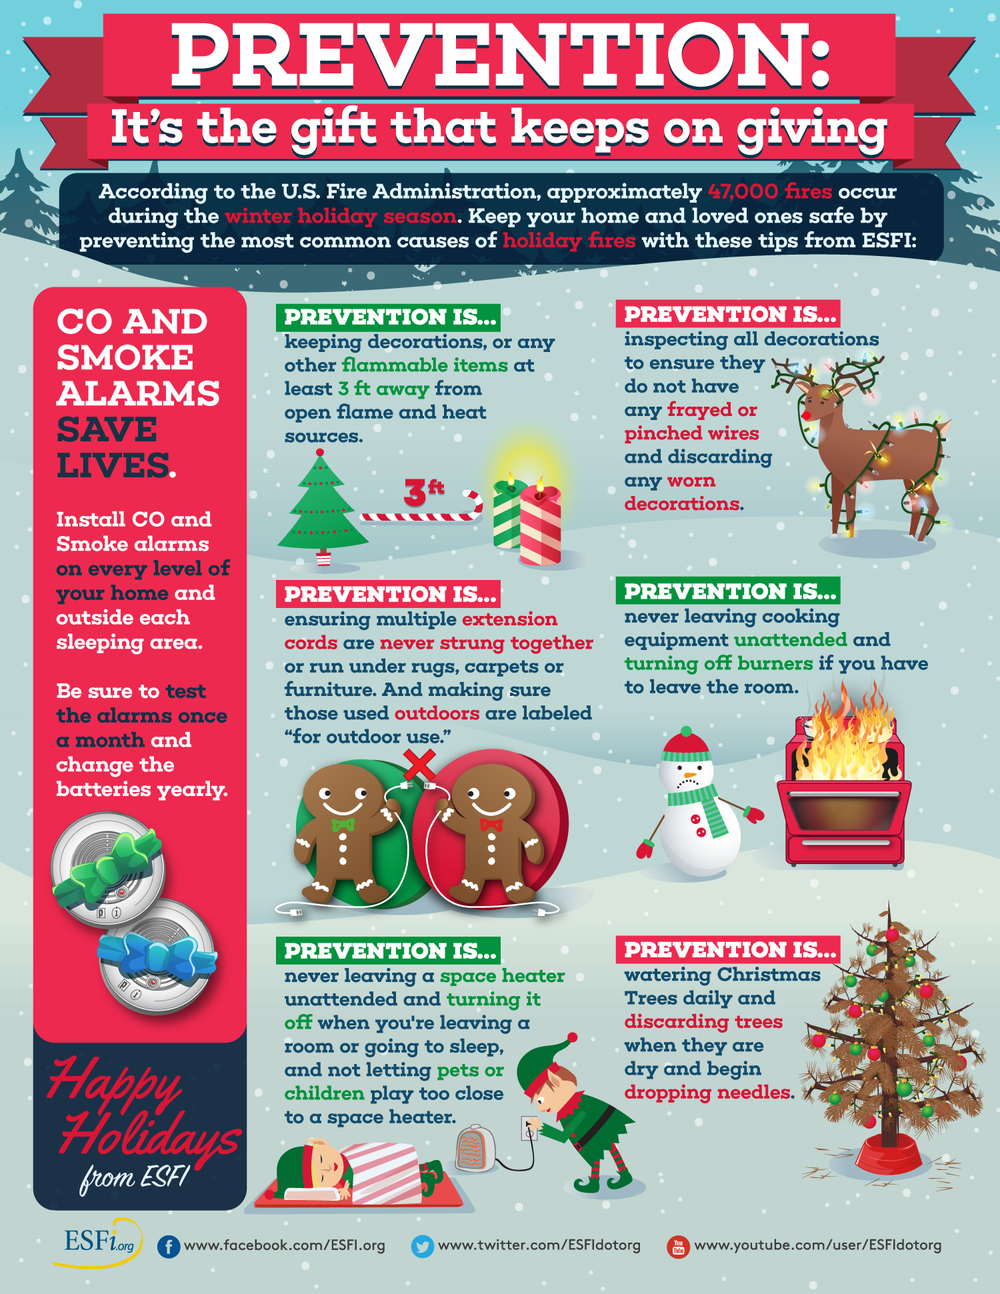 ESFI Holiday Infographic 3.jpg